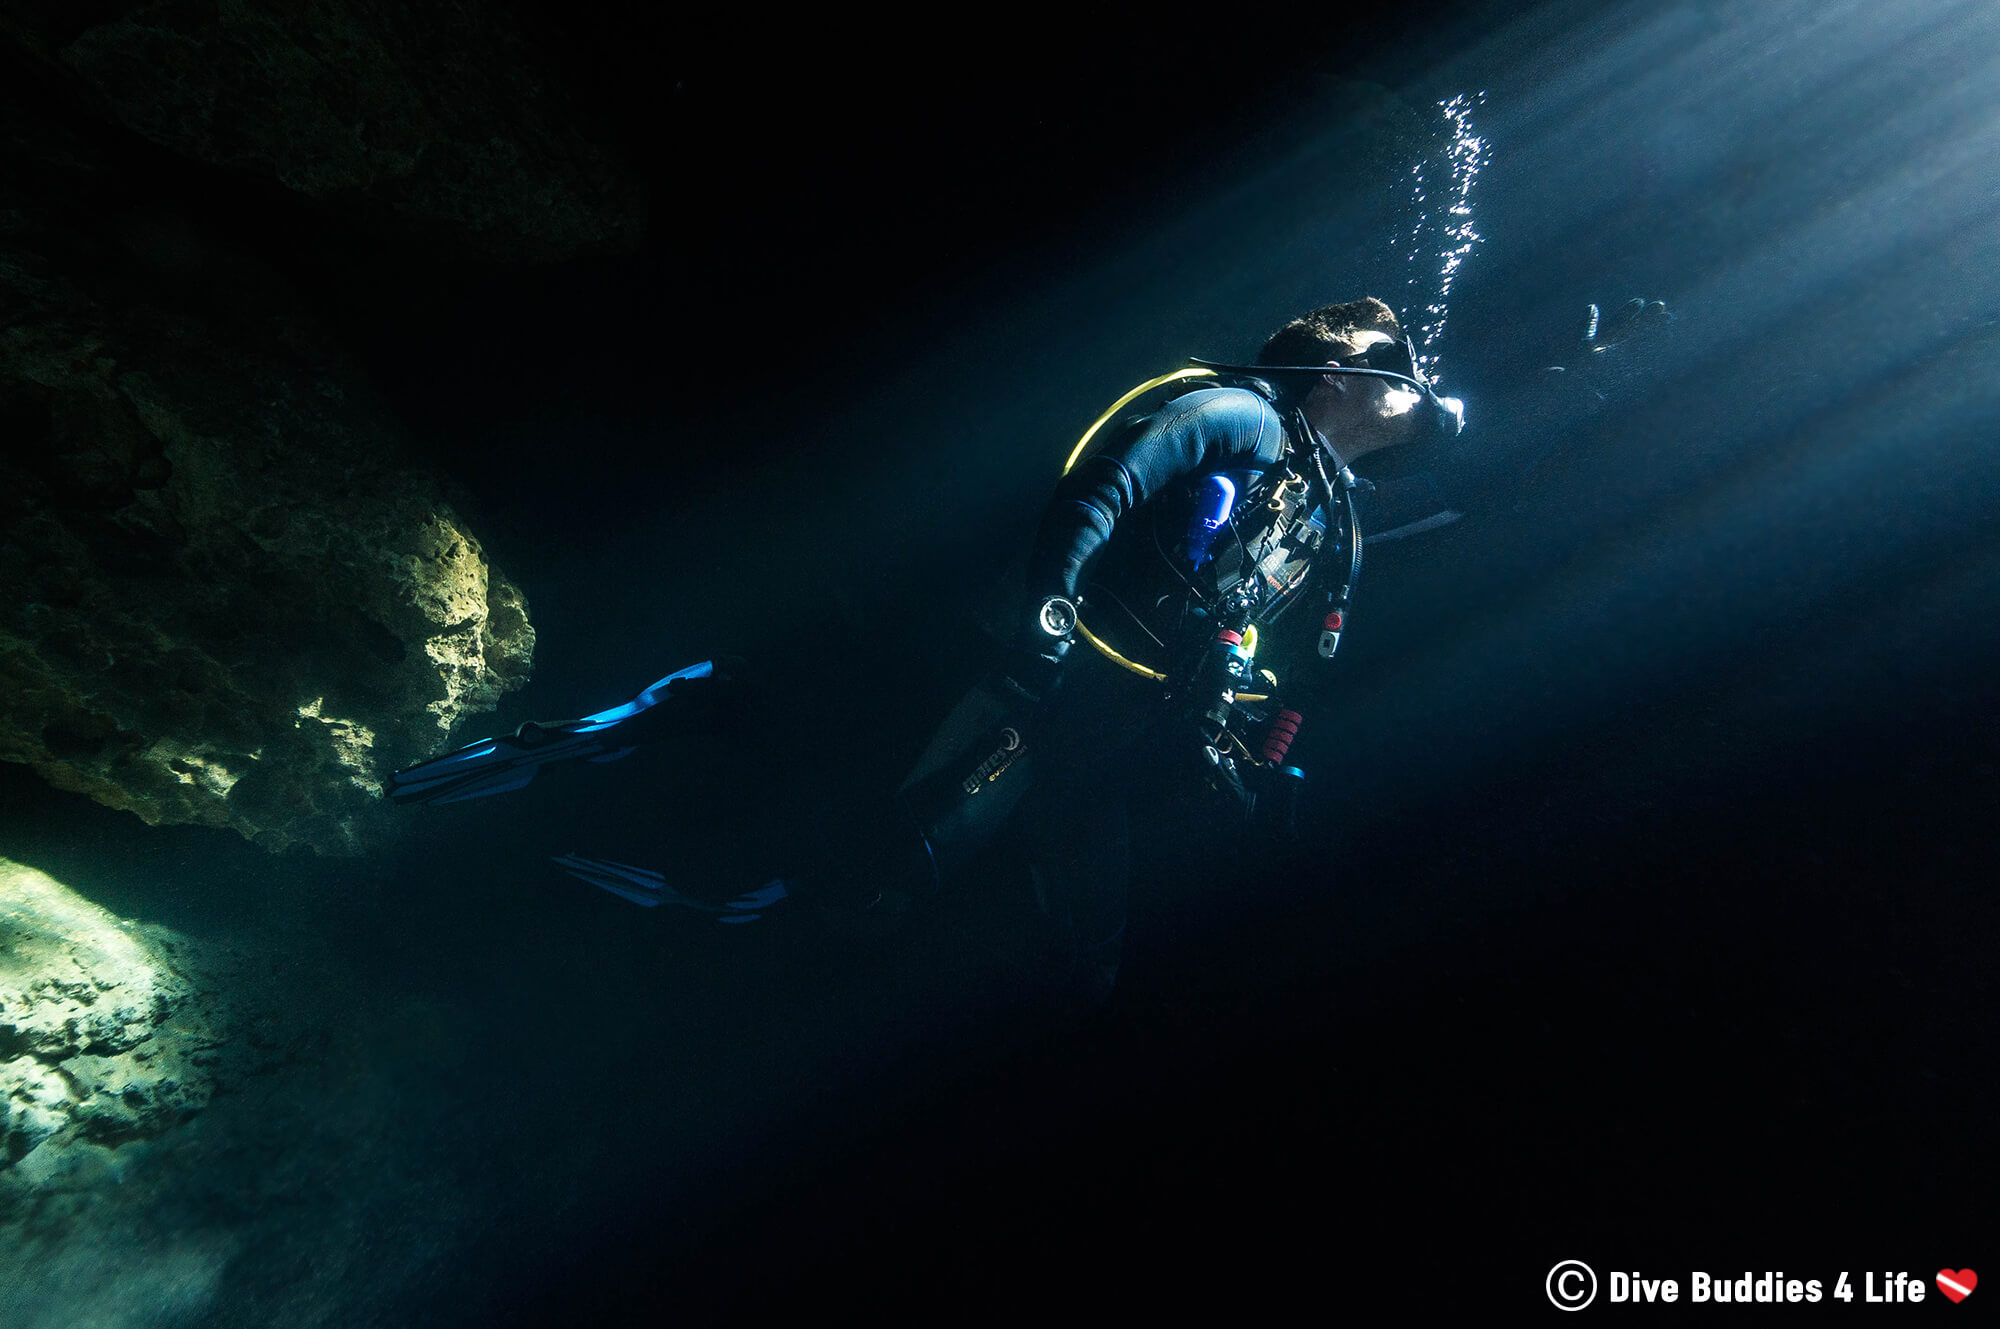 Joey Scuba Diving Into A Beam Of Light In The Devil's Den Spring, Florida, USA